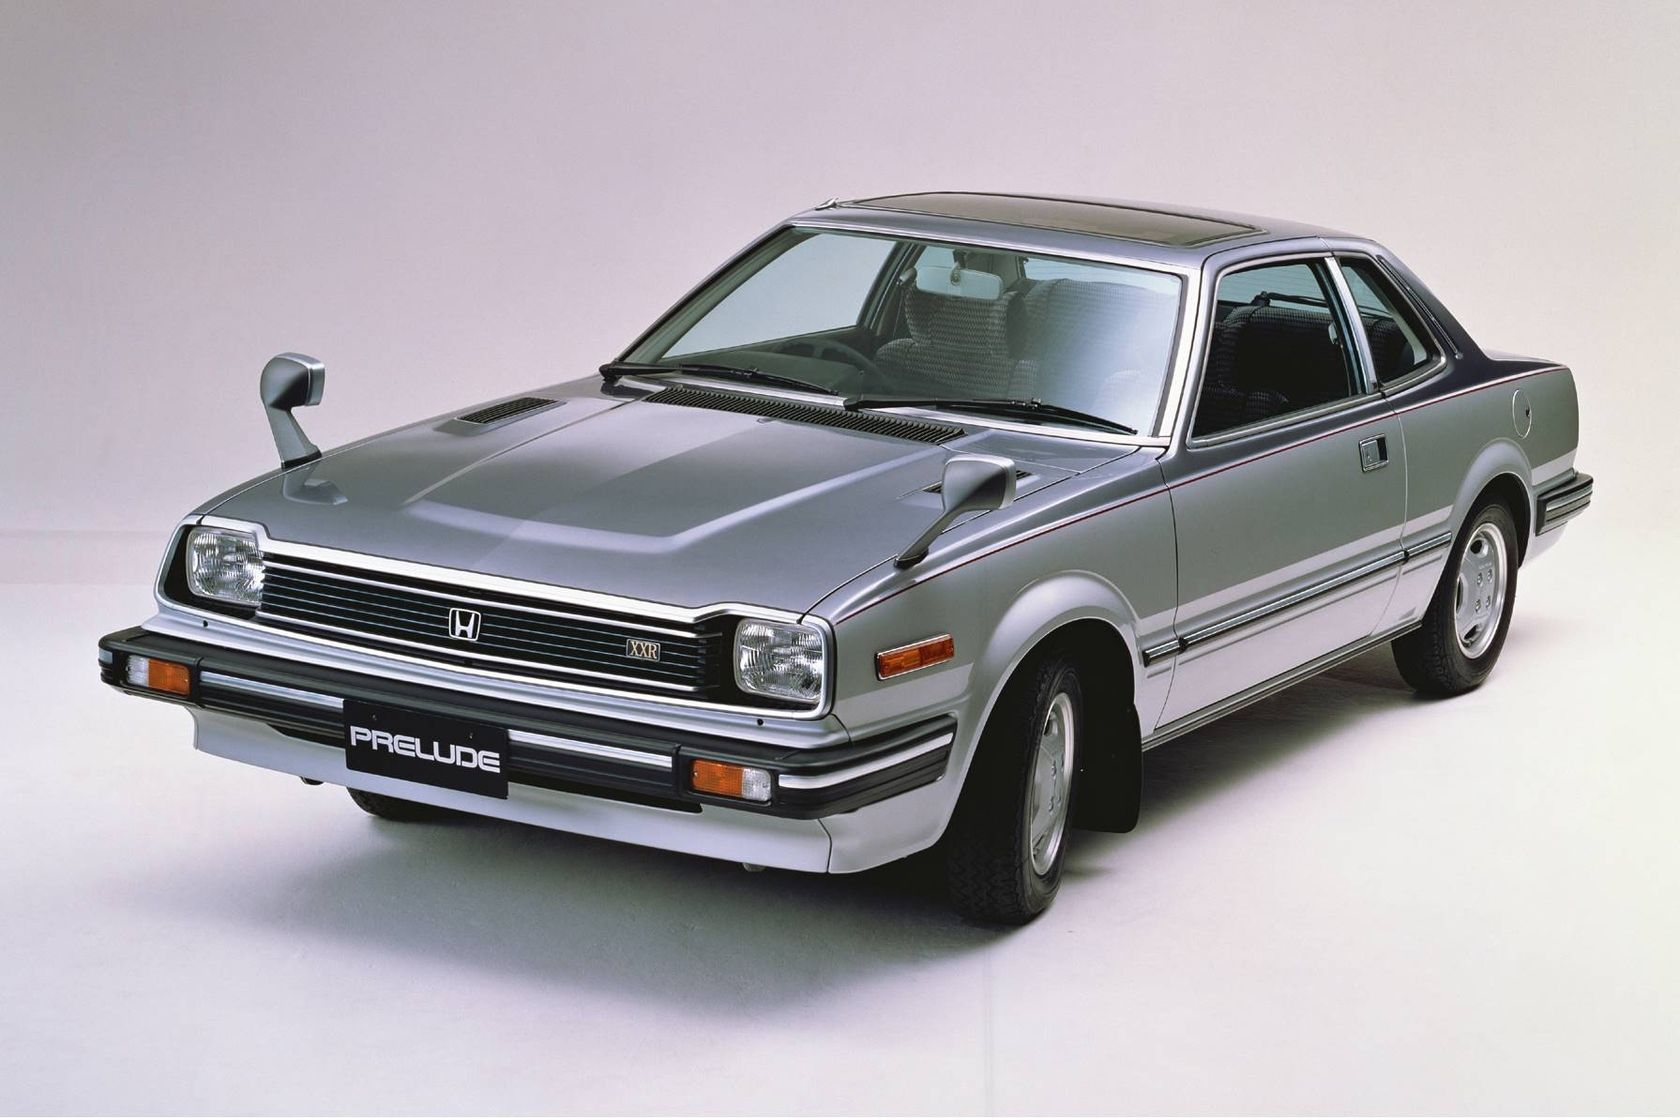 honda prelude first generation my first car was the honda prelude 2nd generation just. Black Bedroom Furniture Sets. Home Design Ideas